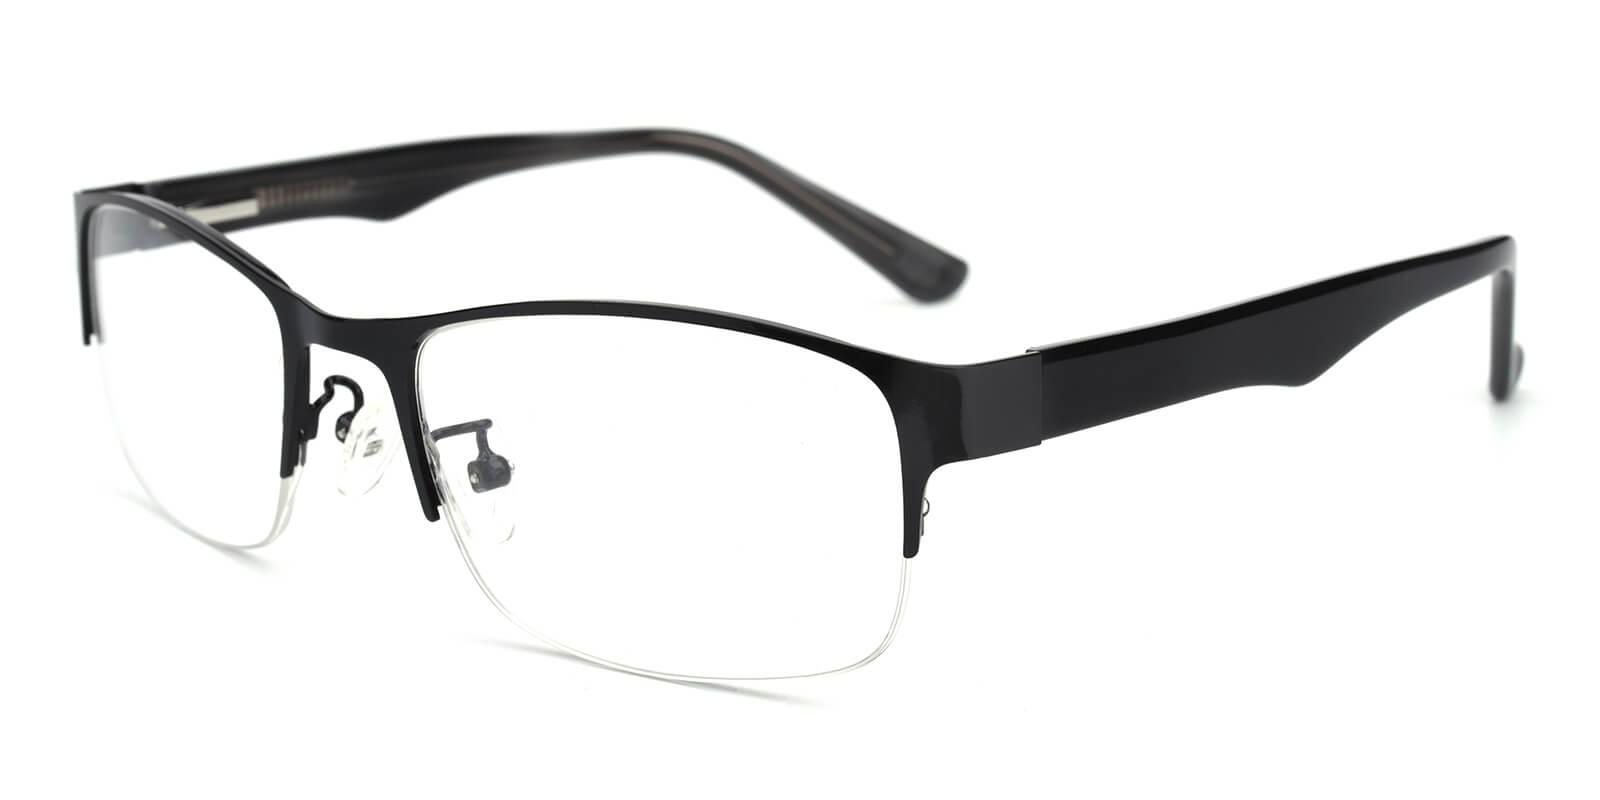 Sapphire-Black-Rectangle-Metal-Eyeglasses-detail